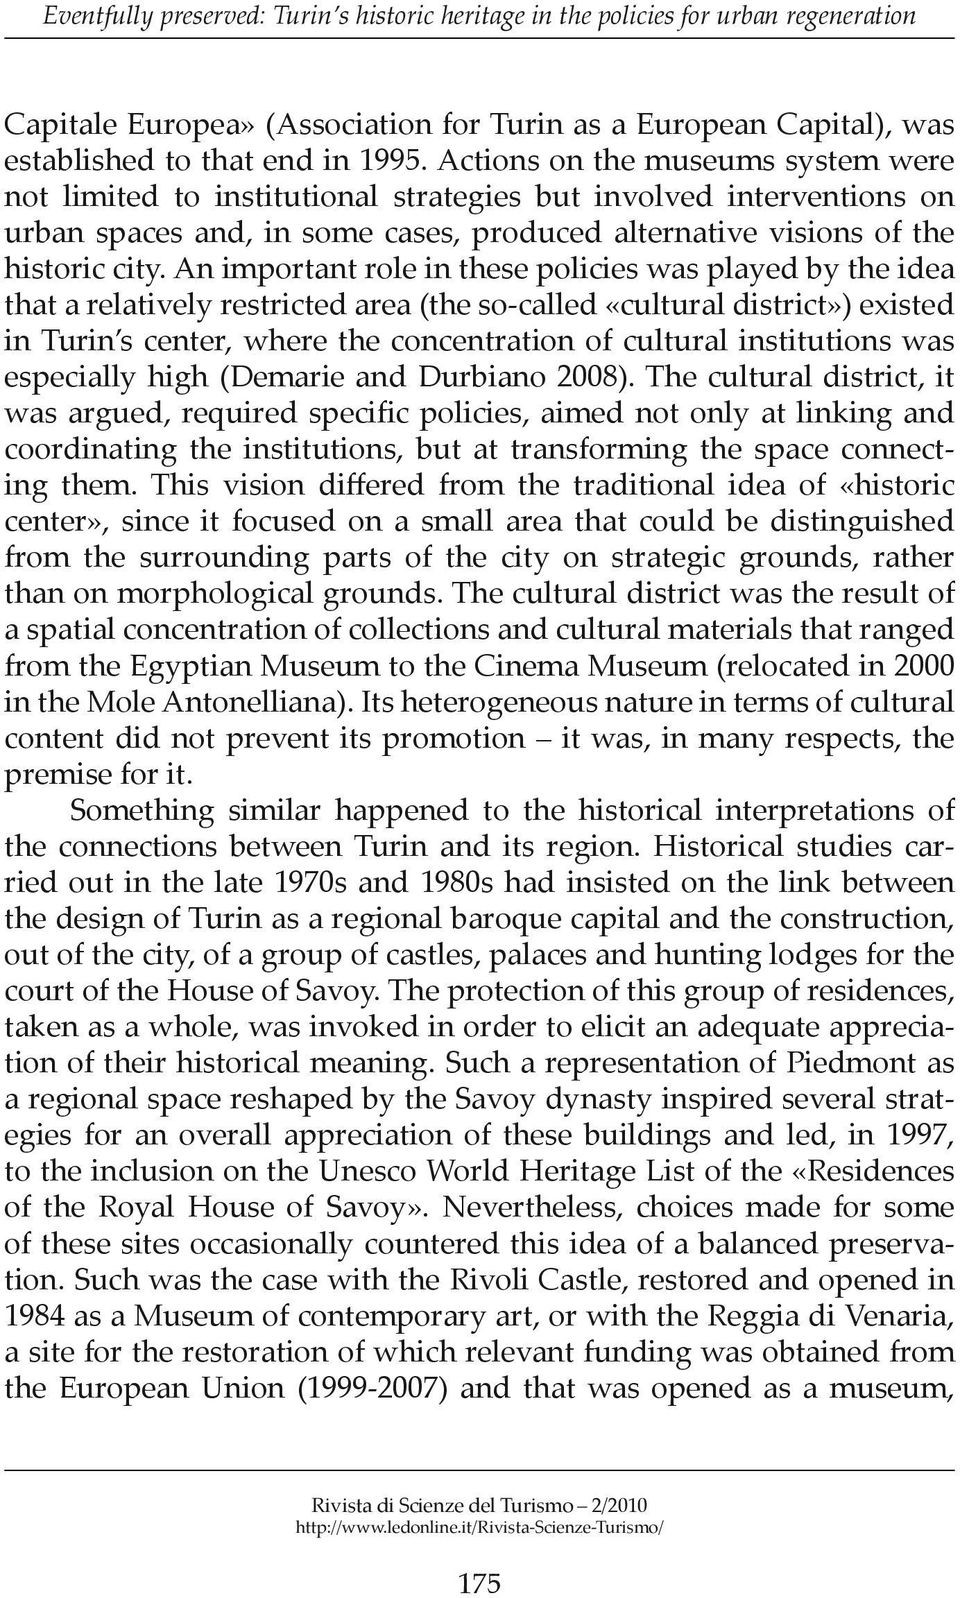 An important role in these policies was played by the idea that a relatively restricted area (the so-called «cultural district») existed in Turin s center, where the concentration of cultural